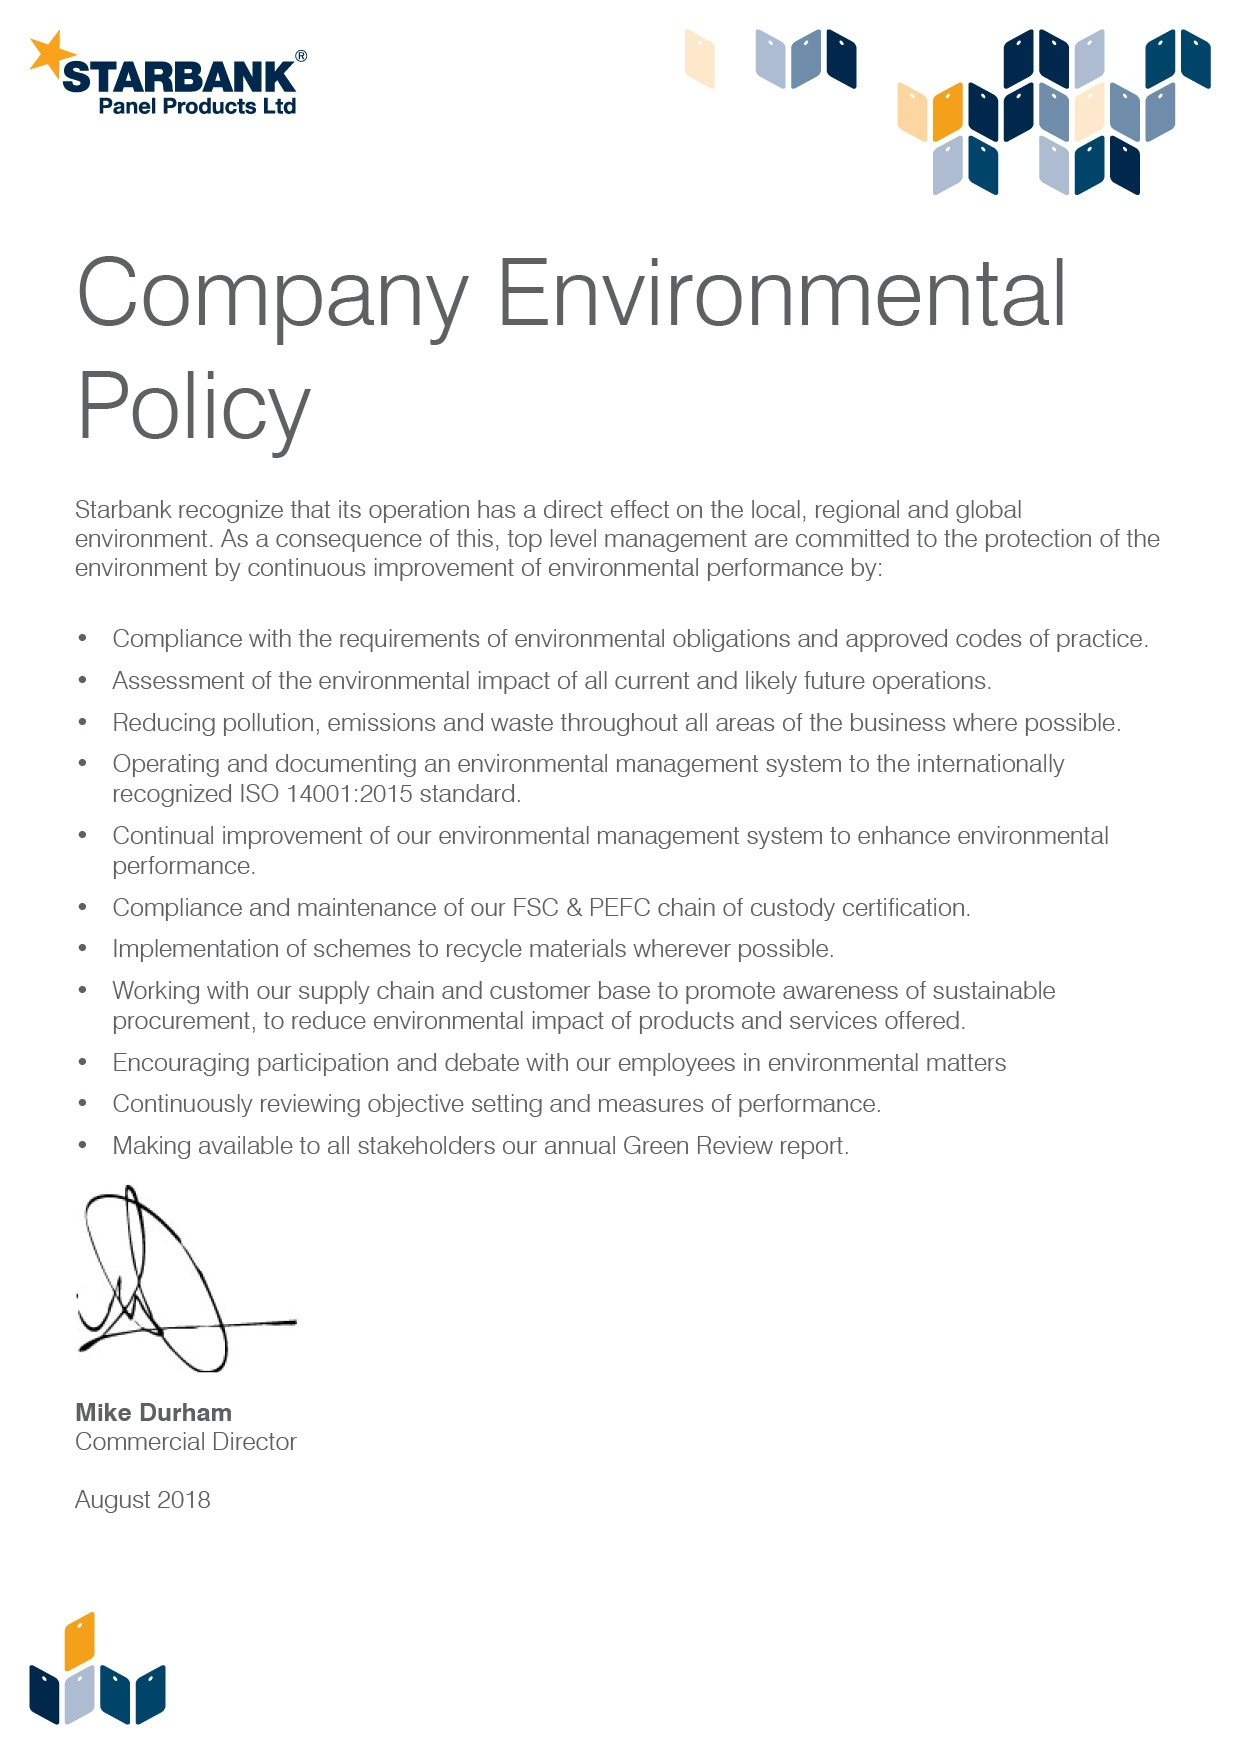 Starbank Environmental Policy